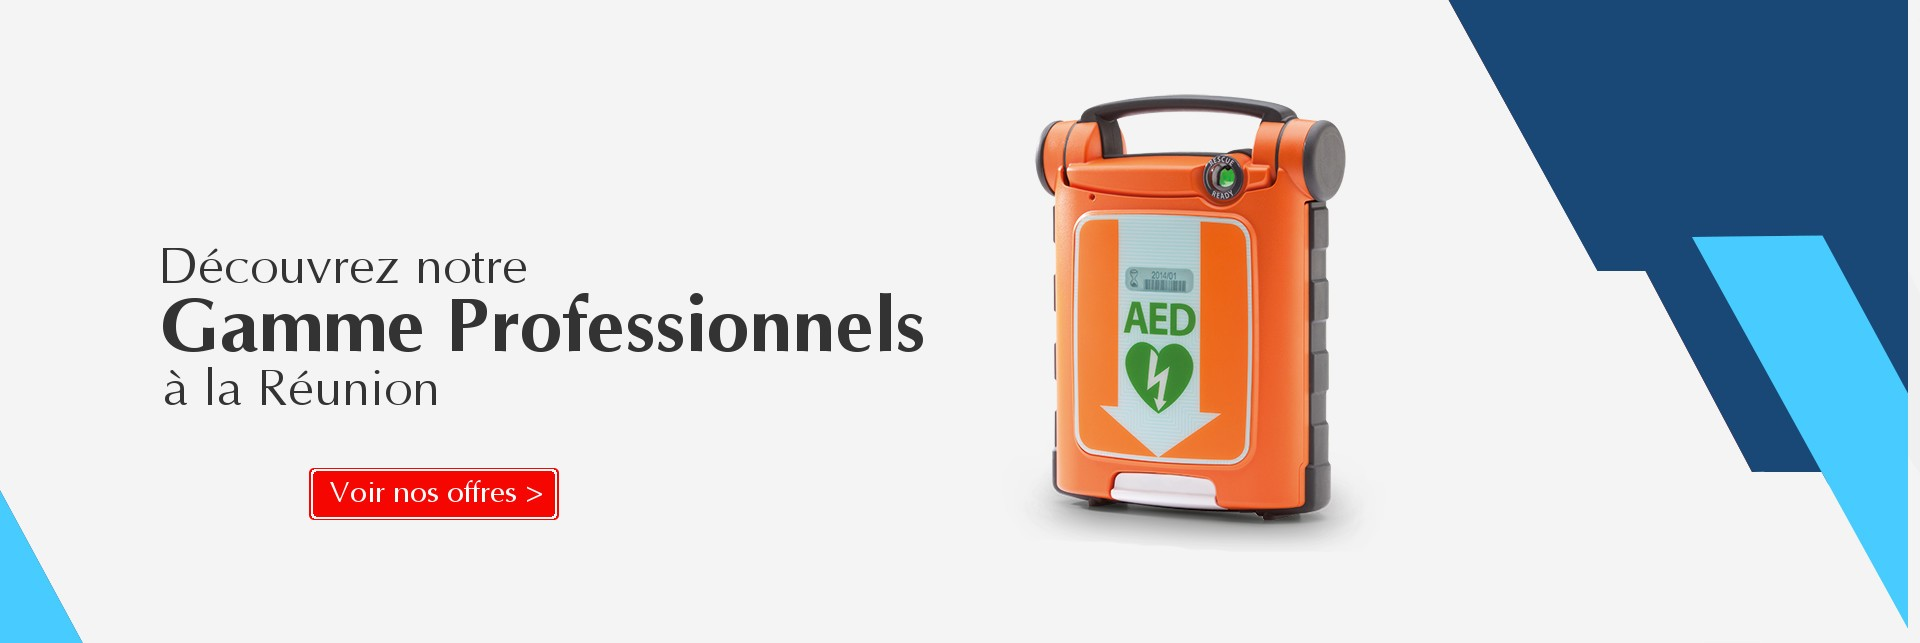 DEFIBRILLATEUR CARDIAC SCIENCE AUTO